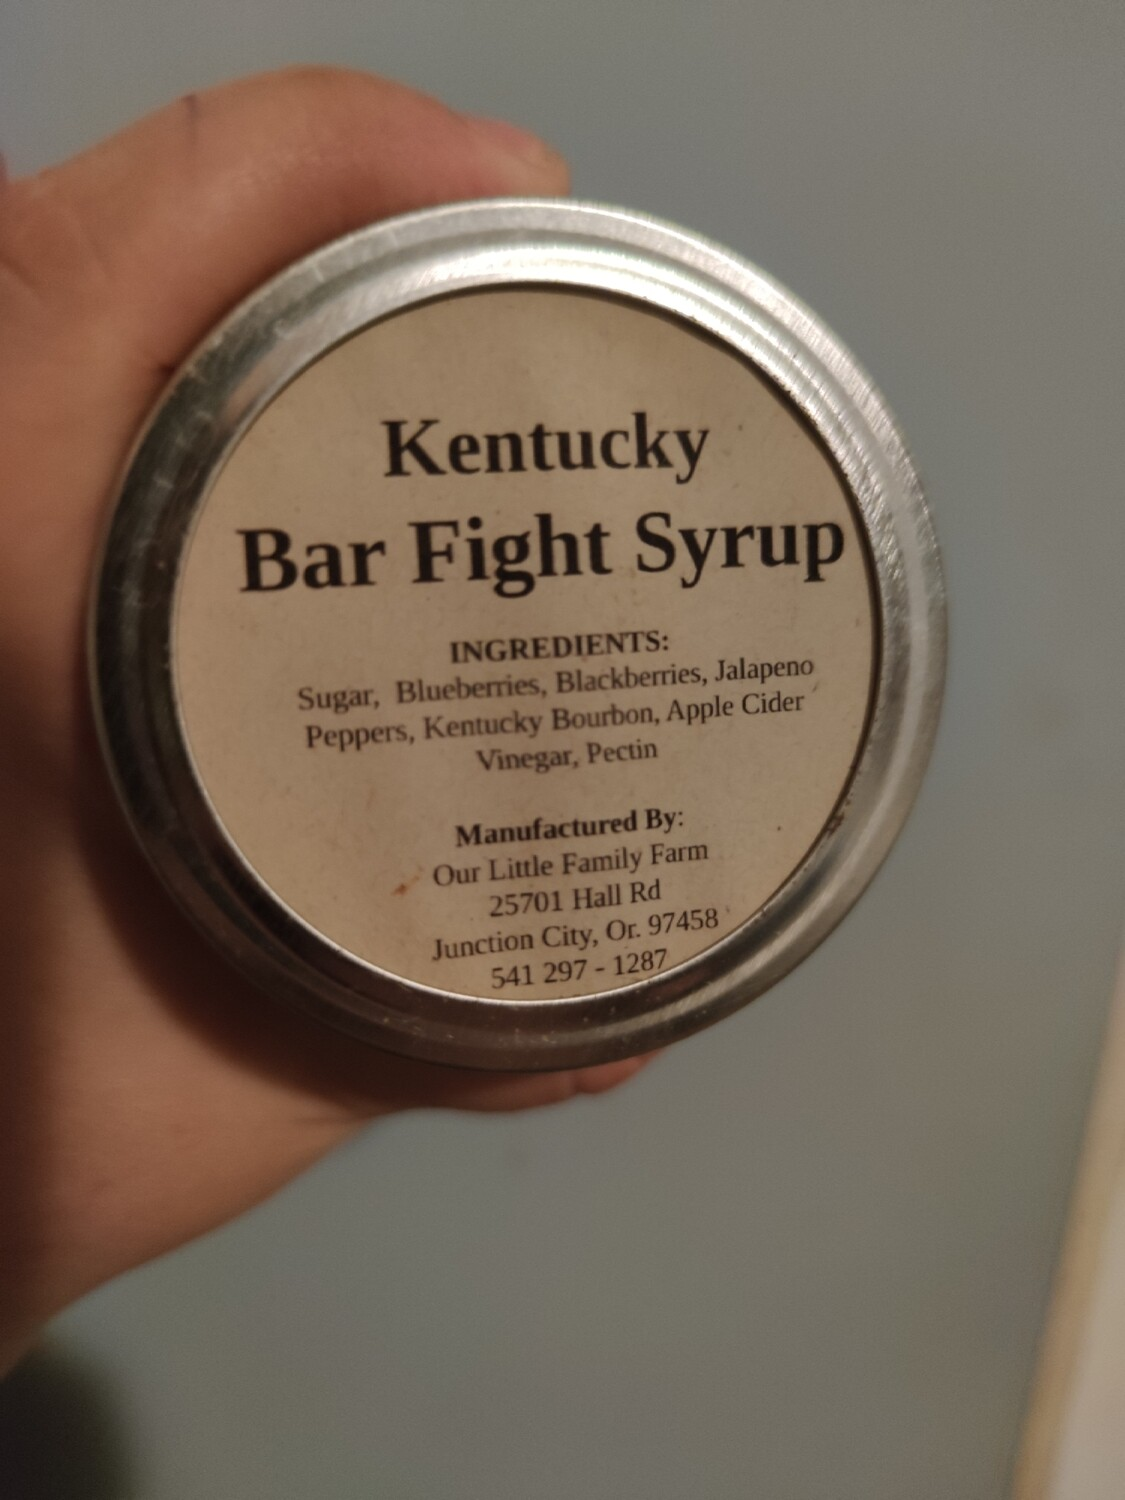 Kentucky Bar Fight Syrup